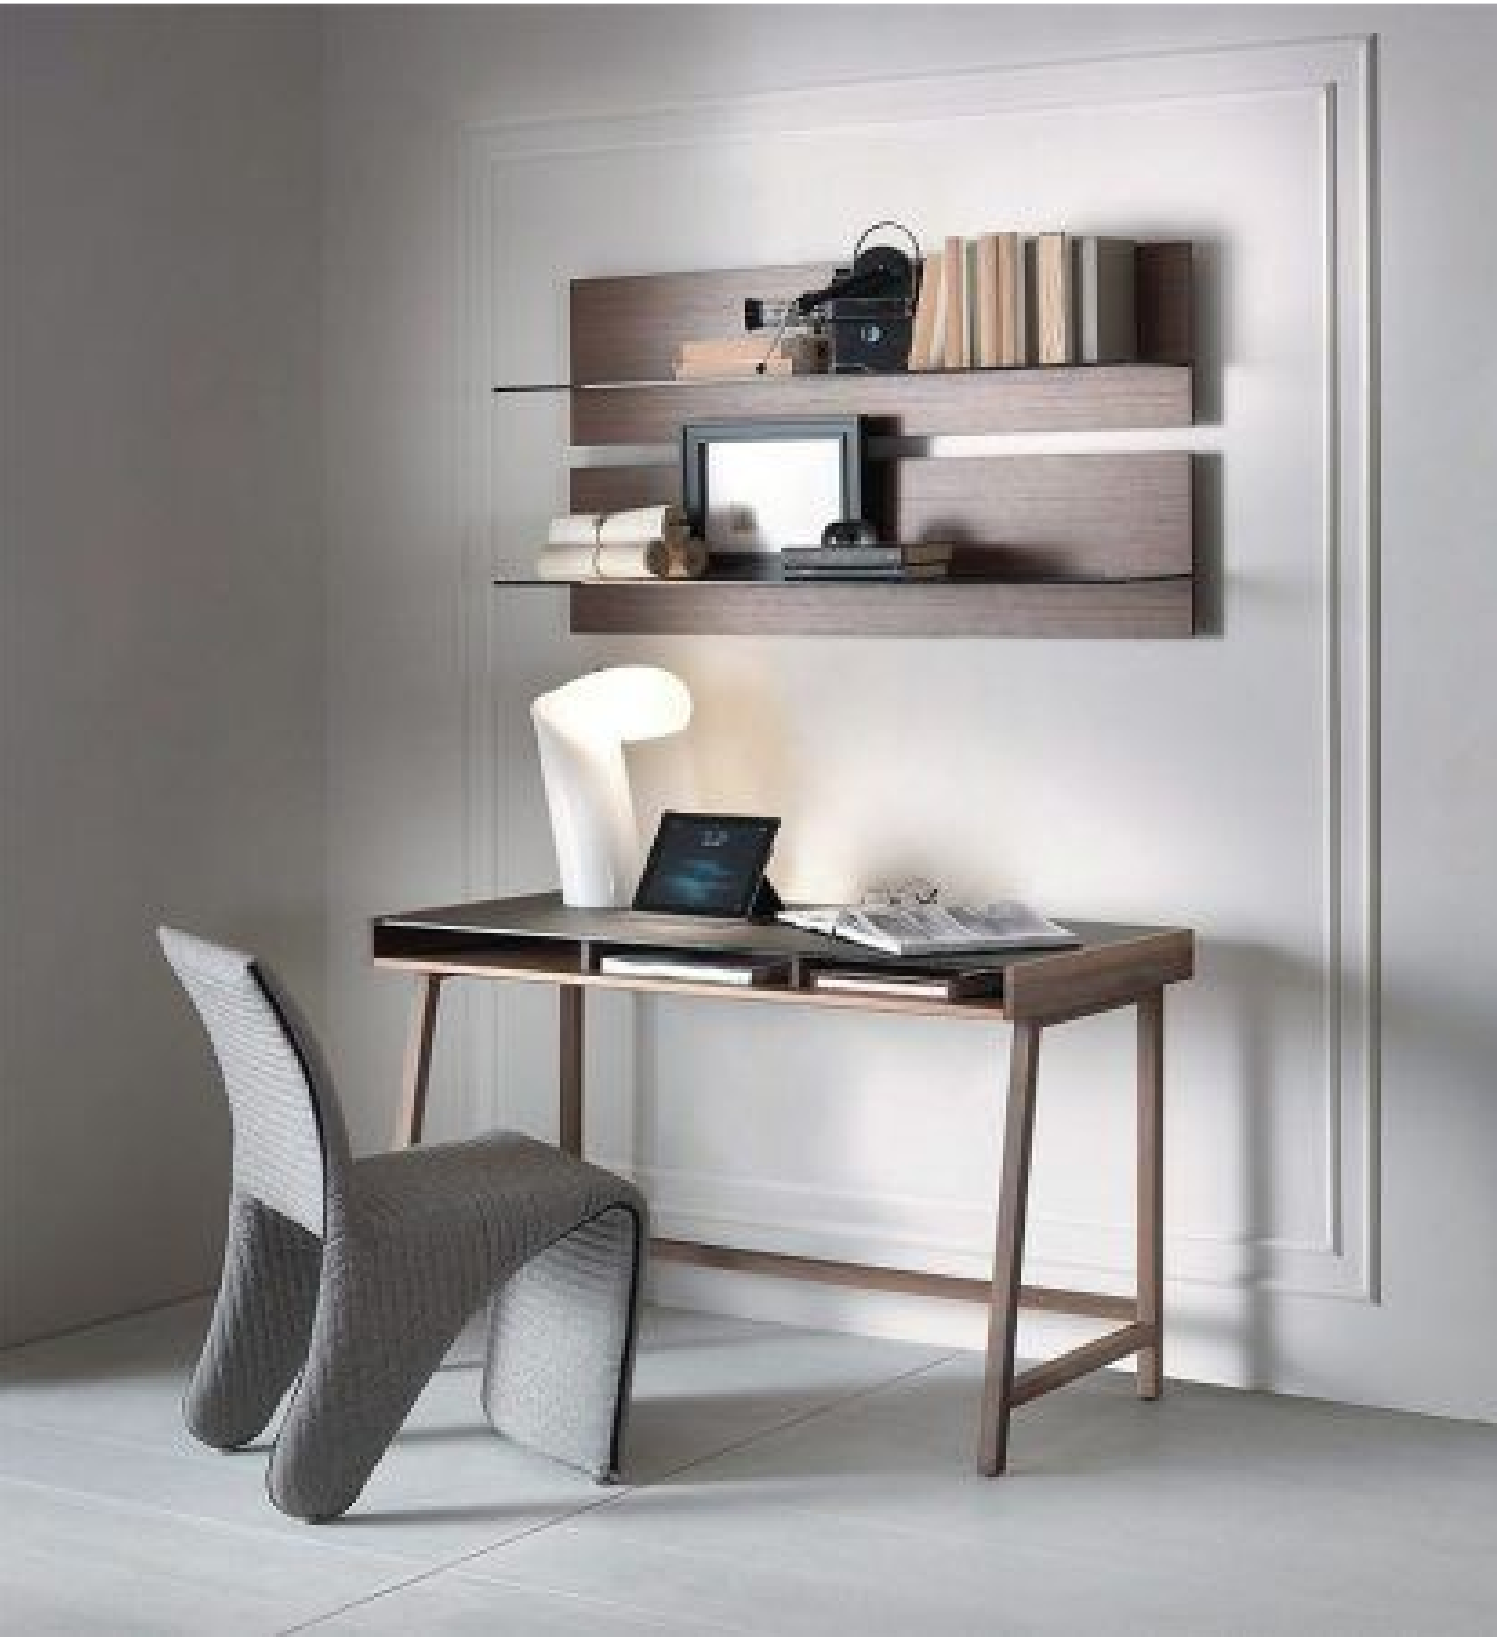 Pin by Angyhh on ppt in 2020   Furniture, Study room ...